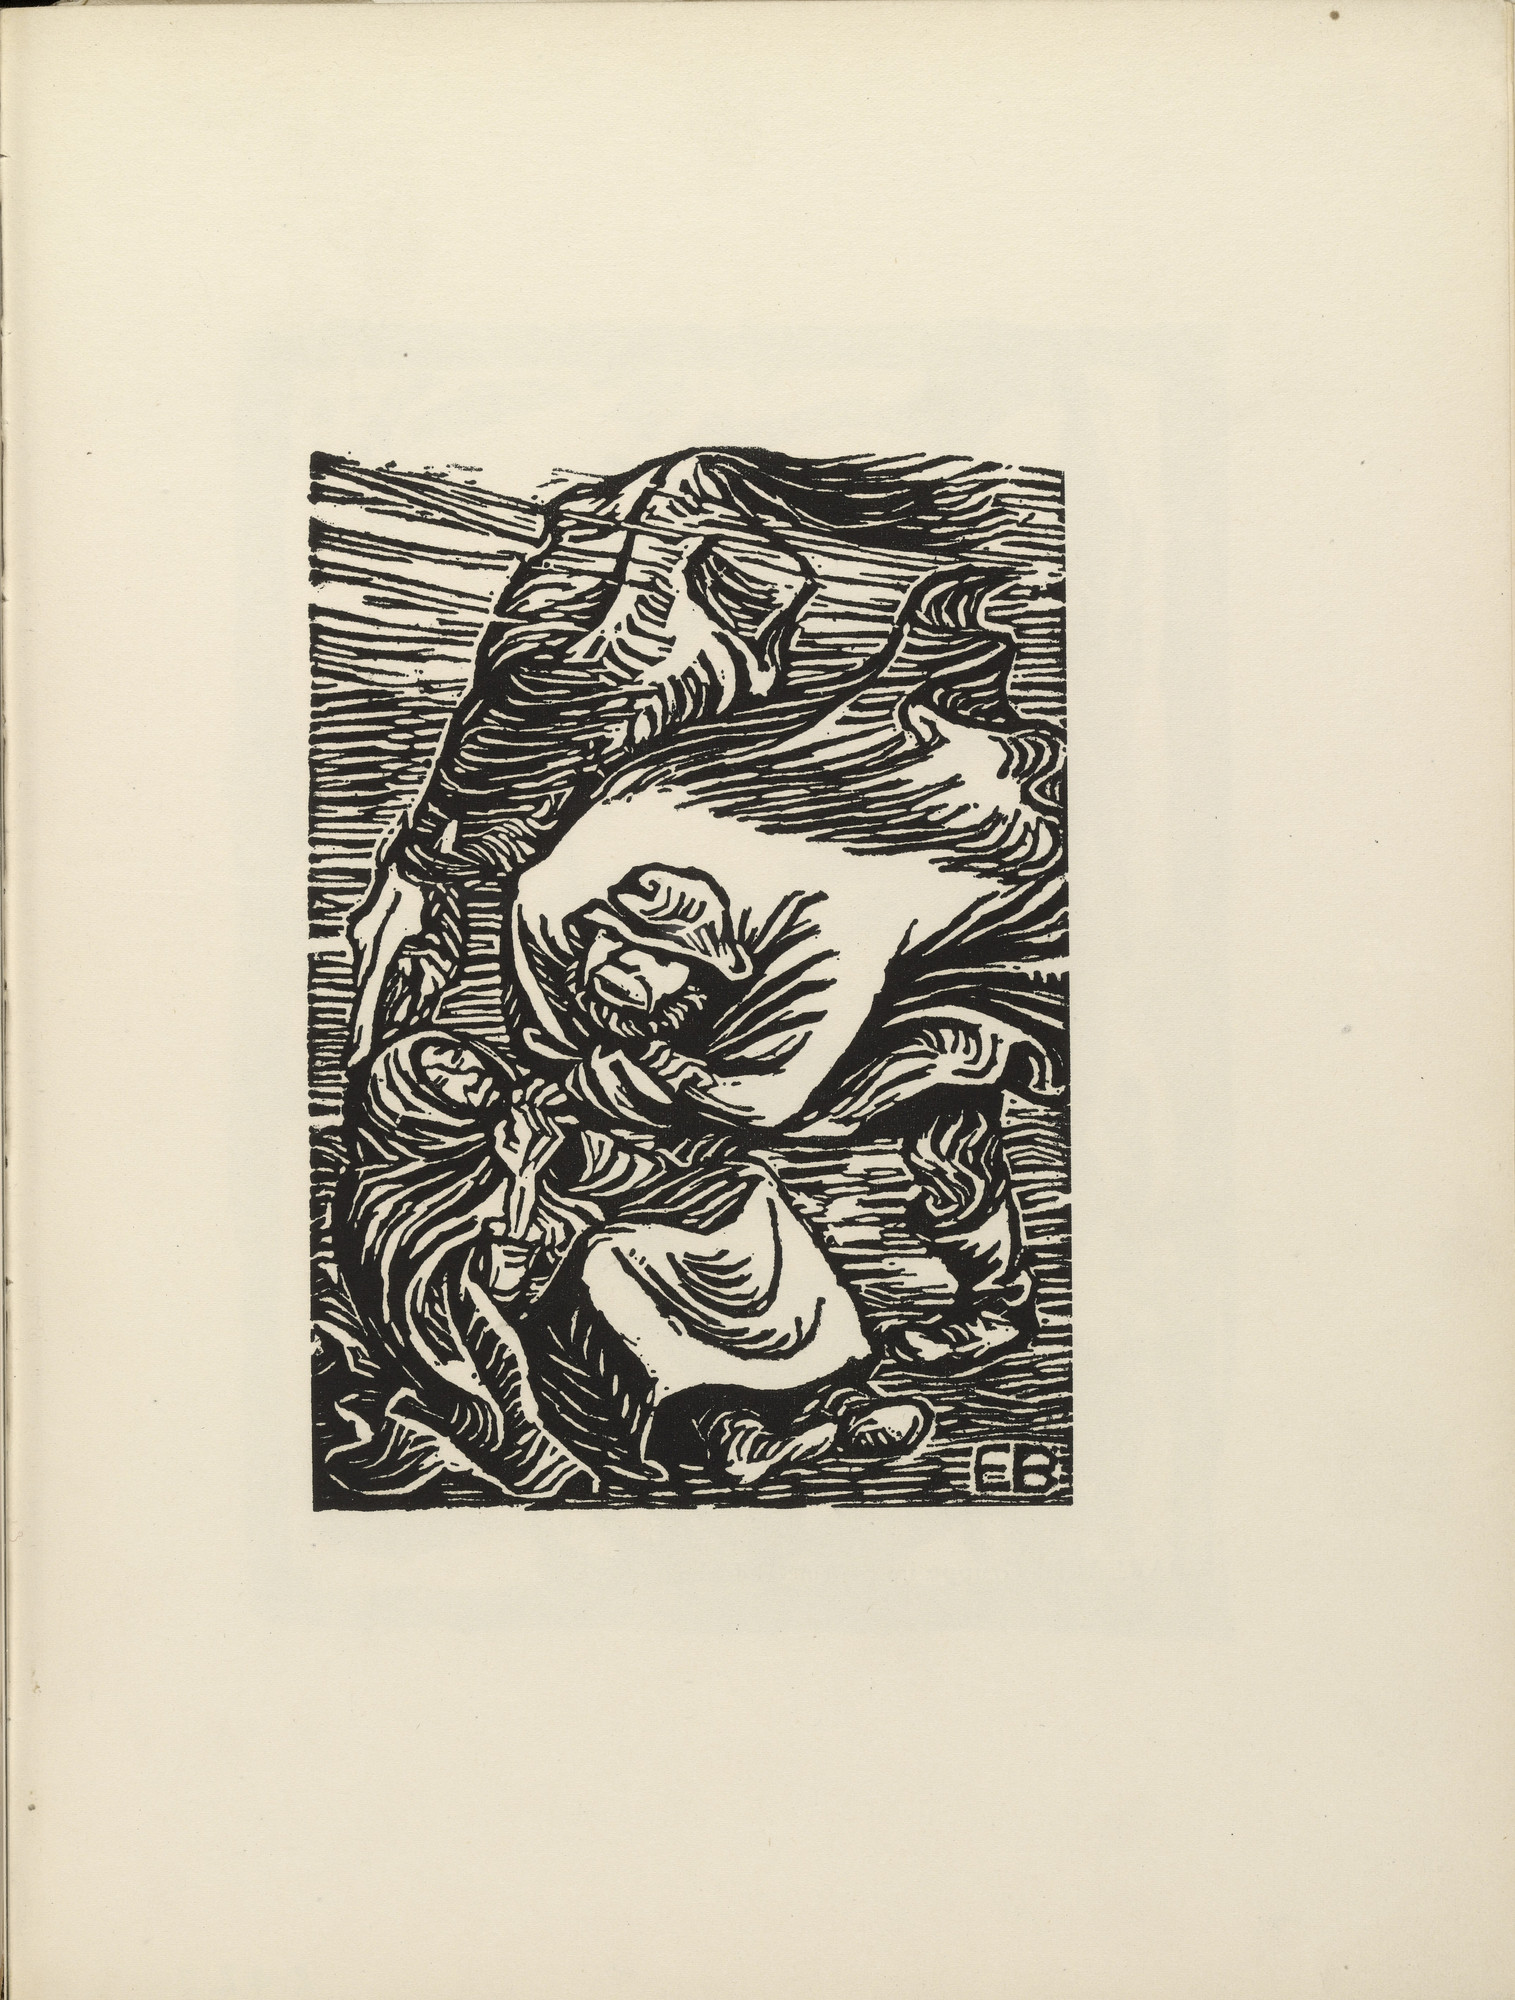 Ernst Barlach. Group in a Storm (Gruppe im Sturm)(plate 14) from the illustrated book Deutsche Graphiker der Gegenwart (German Printmakers of Our Time). 1920 (print executed 1919)